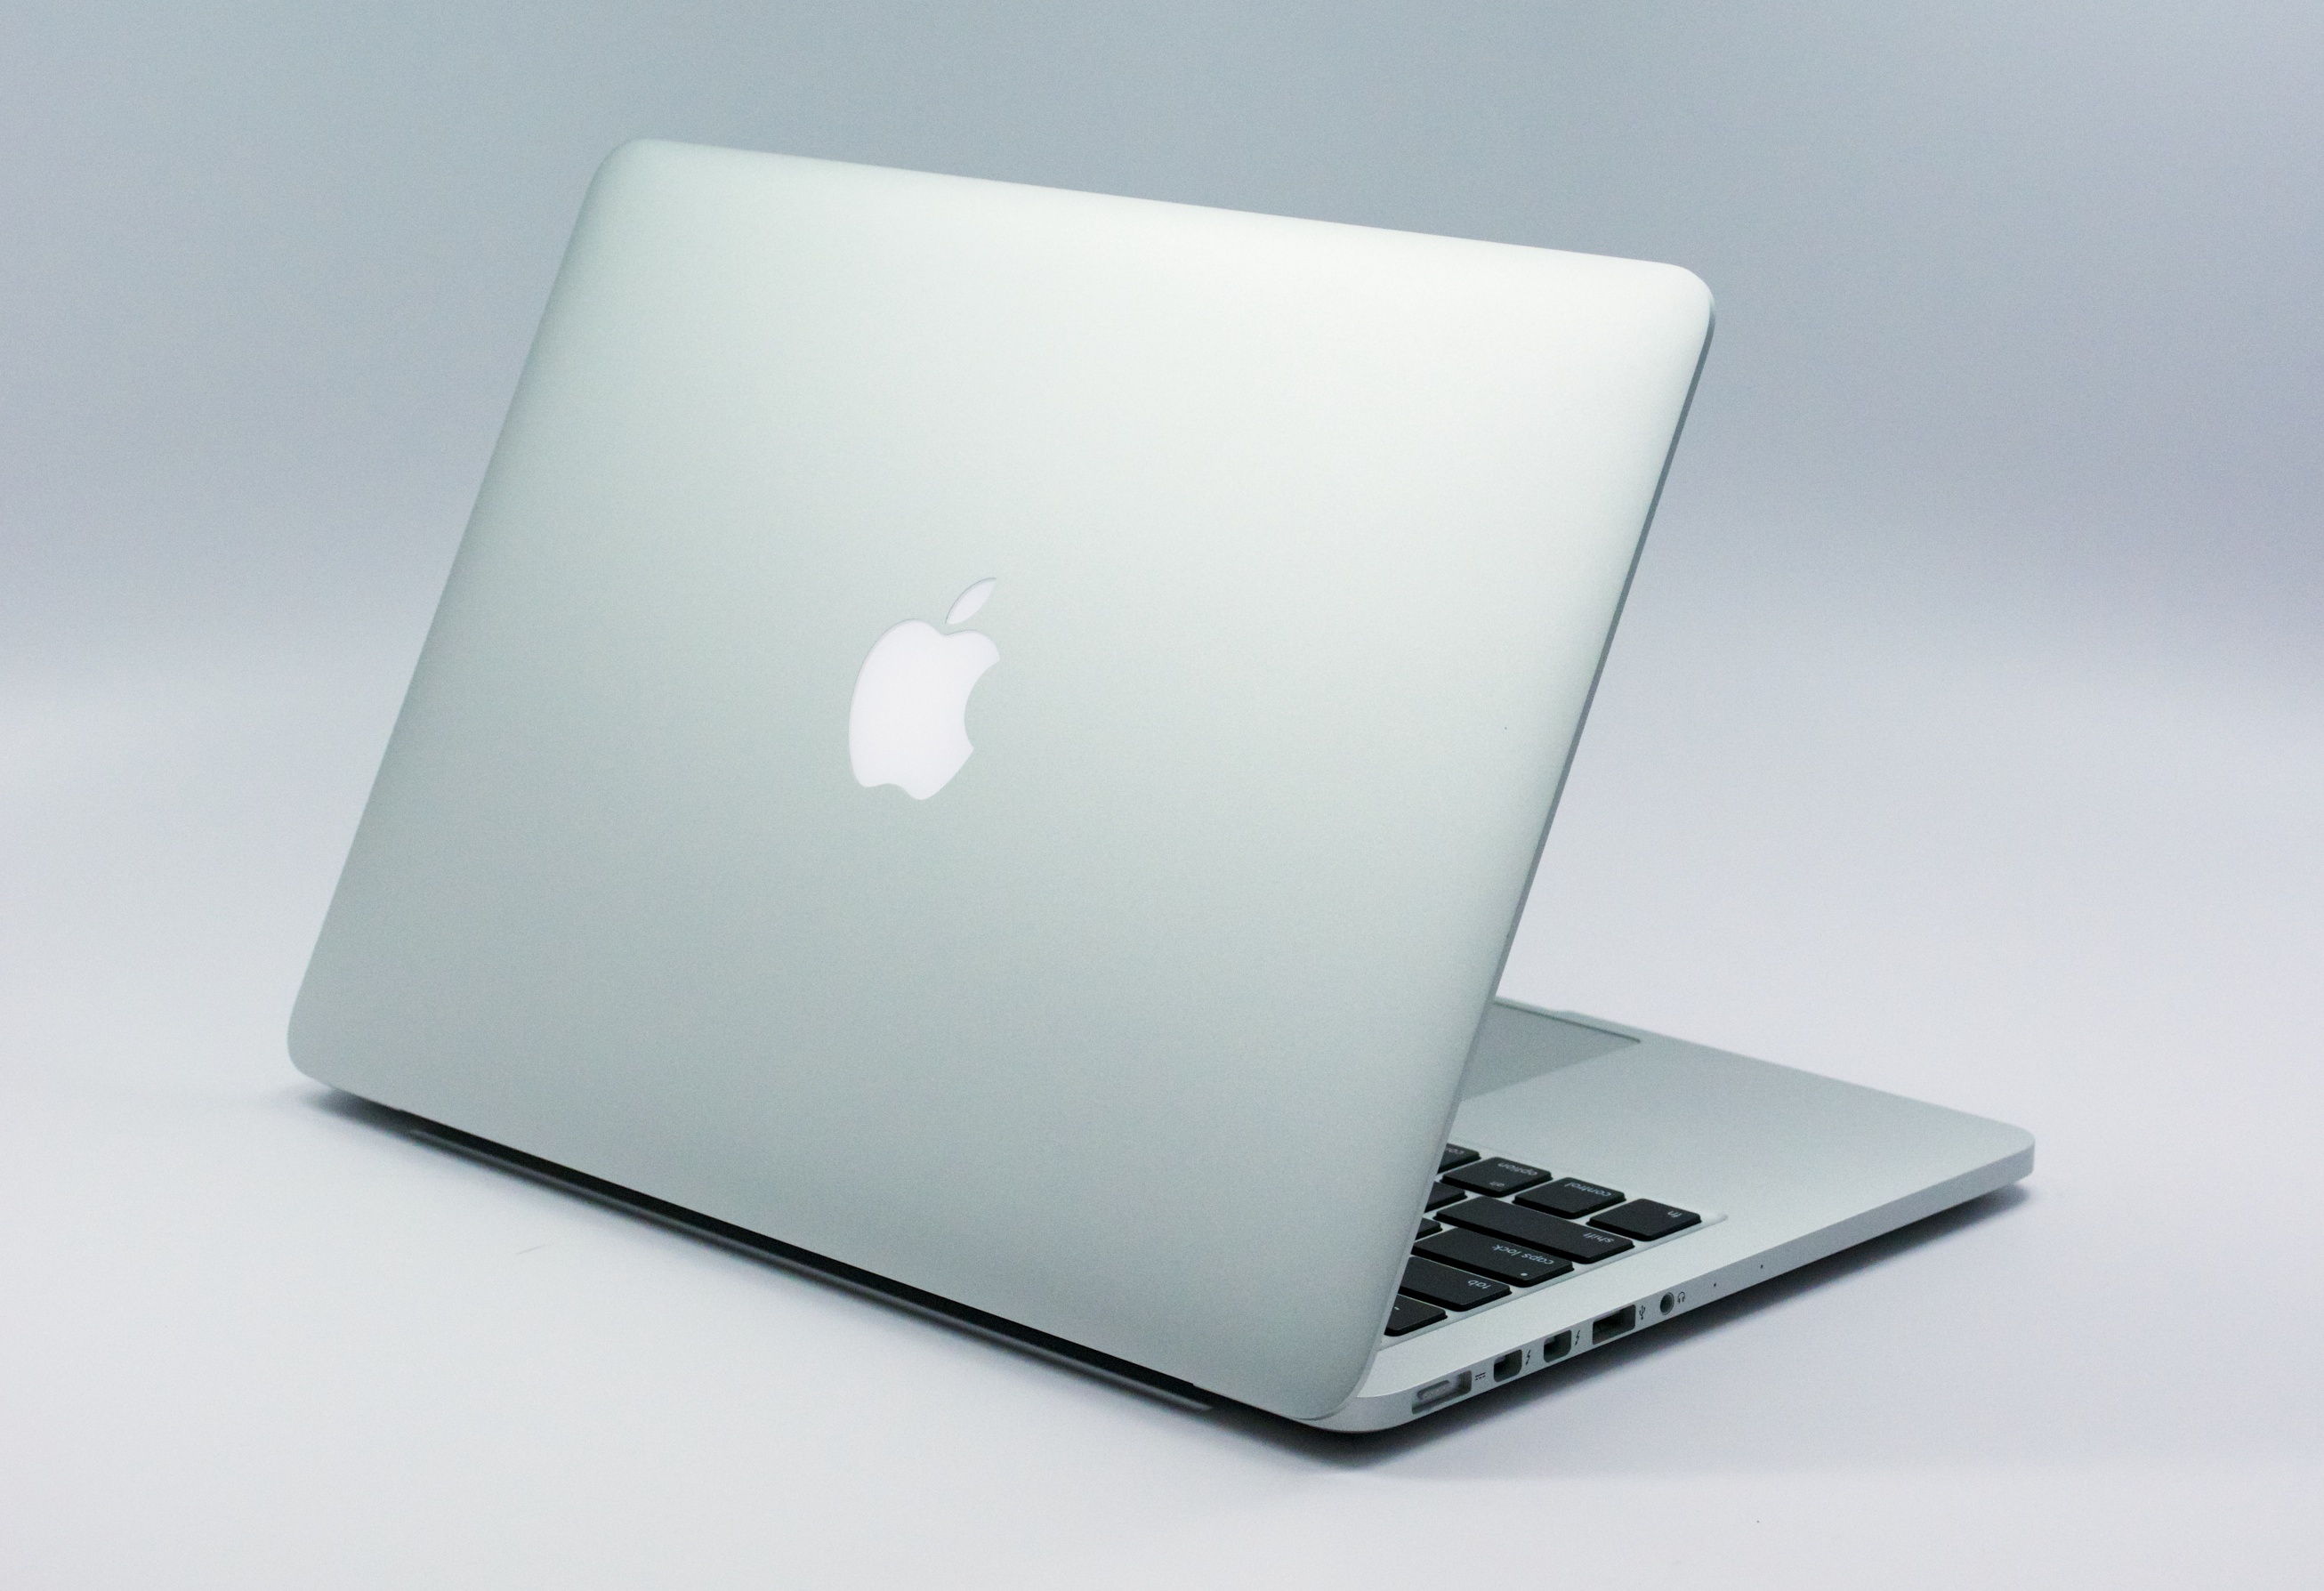 13-inch MacBook Pro Retina Review (Late 2013